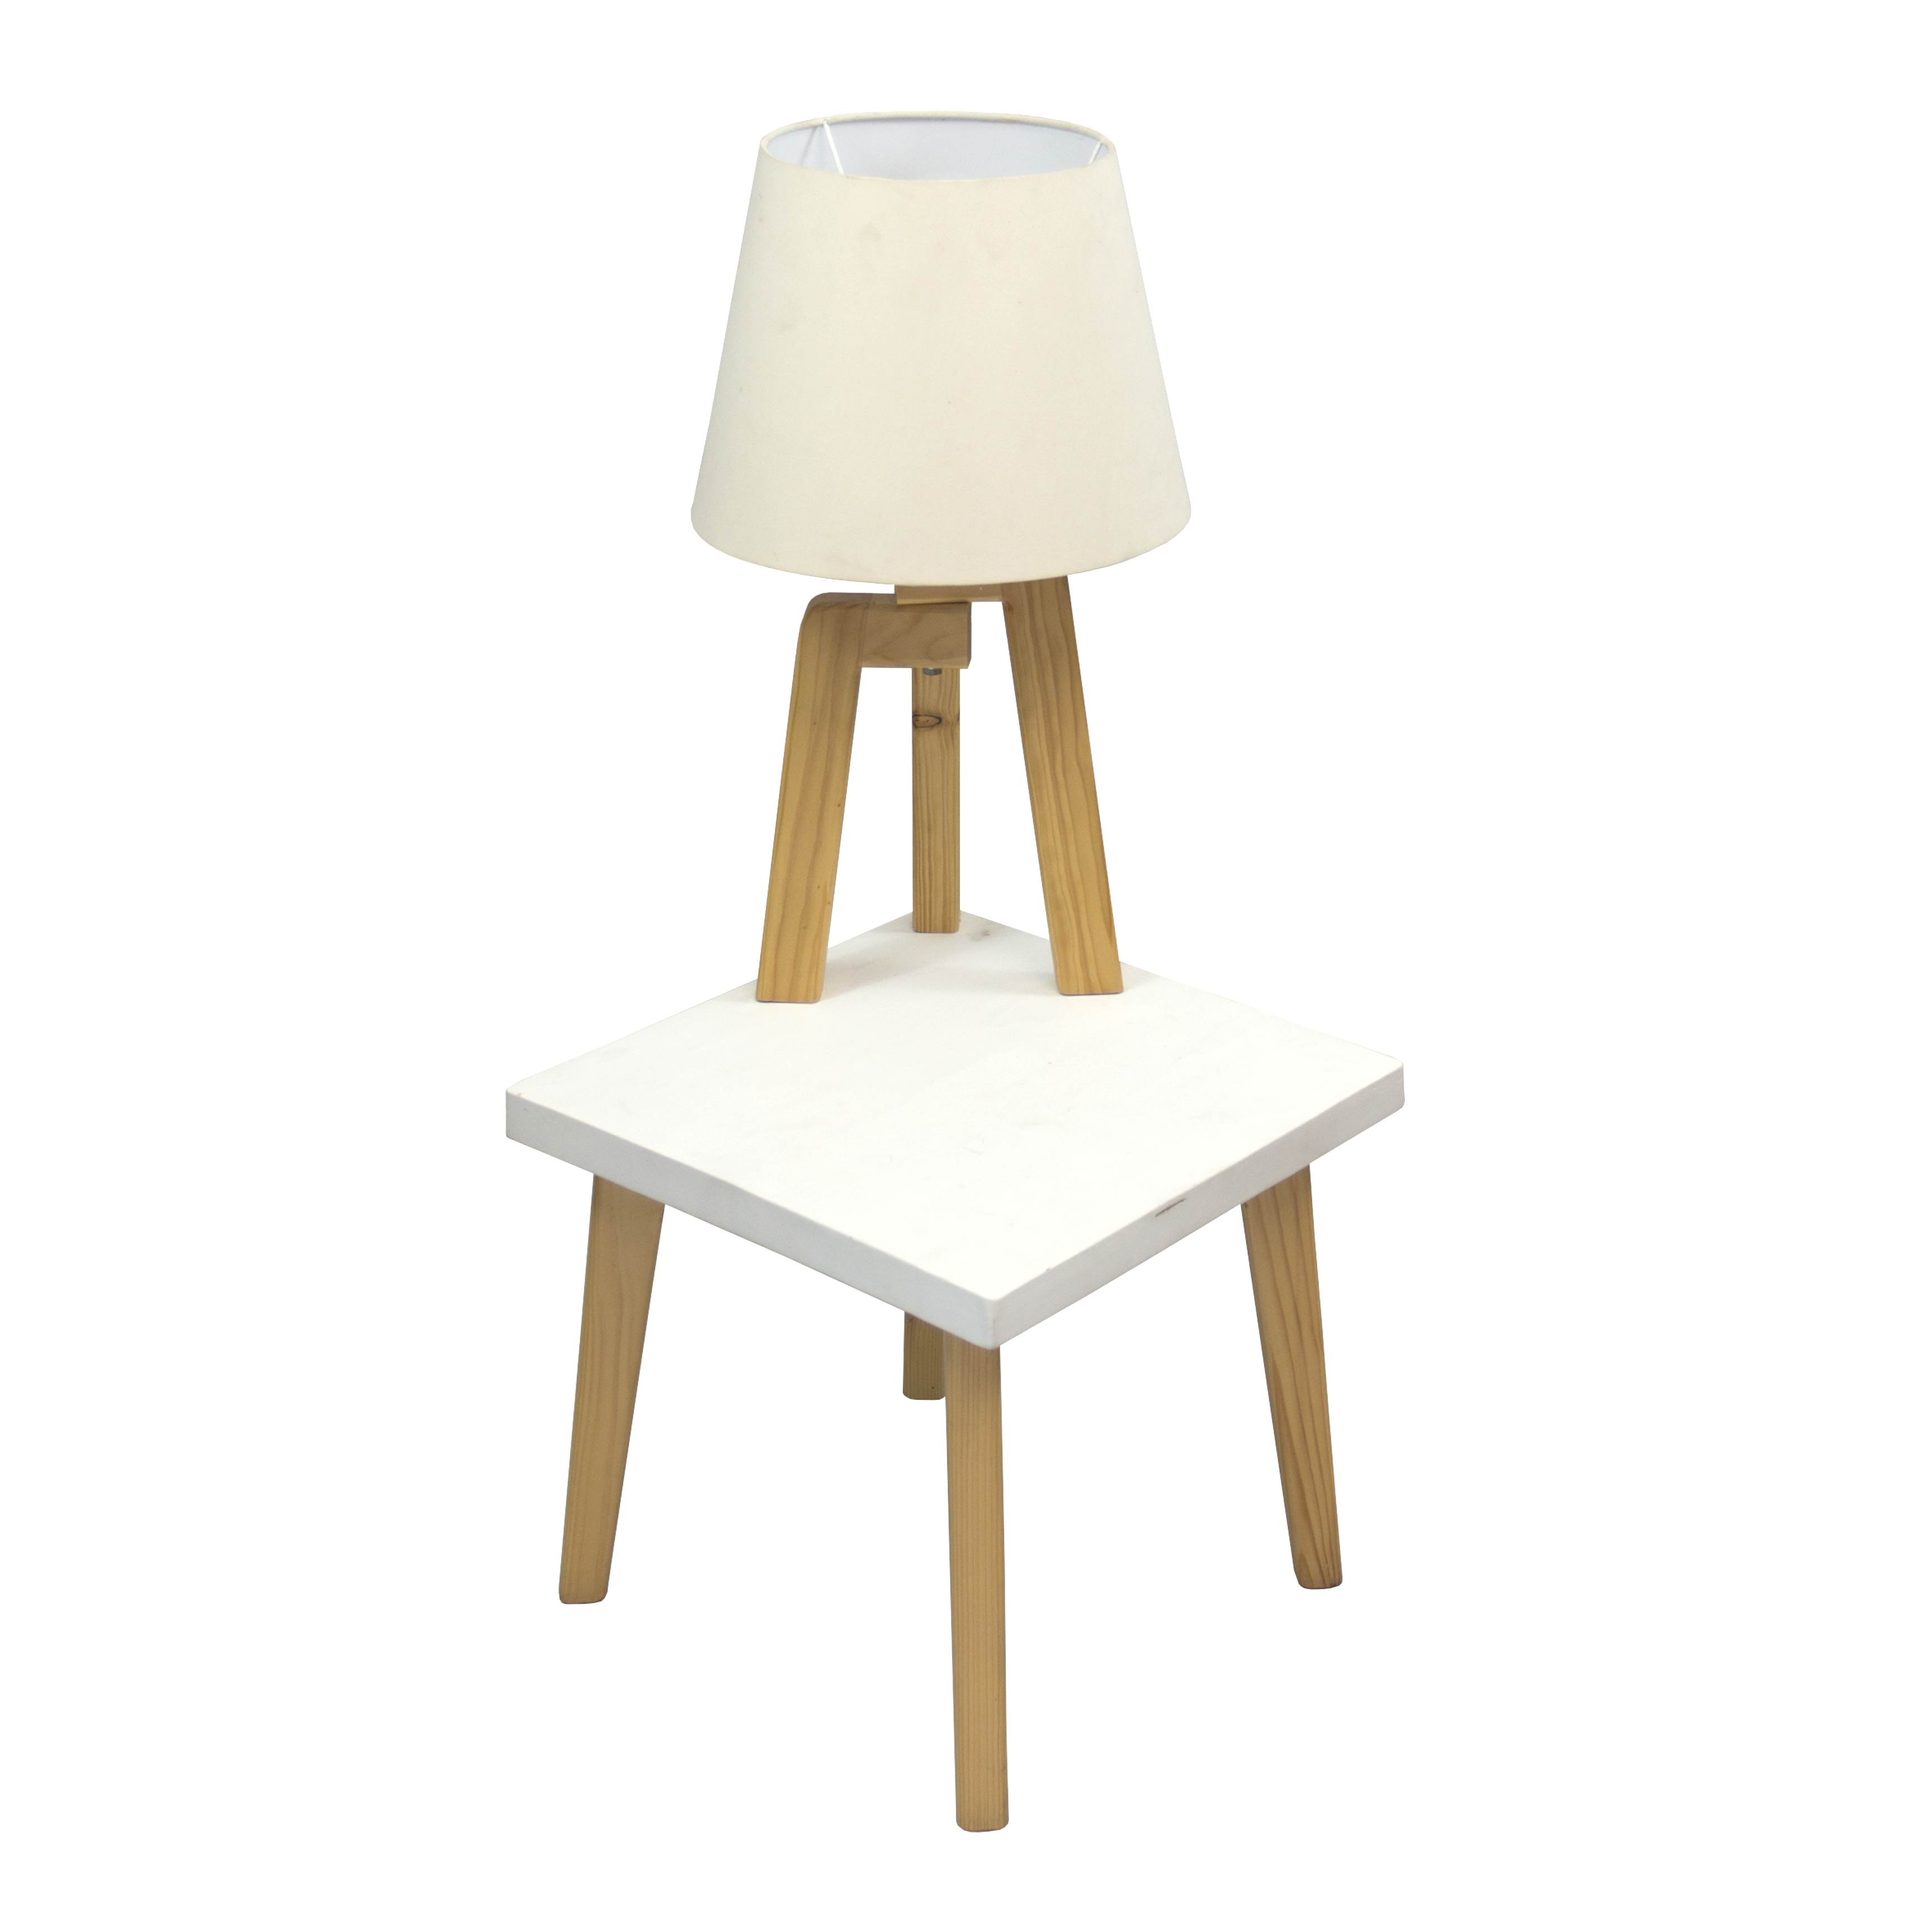 Best Price Modern Wooden Bedside Table With Lamp For Bedroom Buy Bedside Lamp Table Table Side Table Modern Product On Alibaba Com